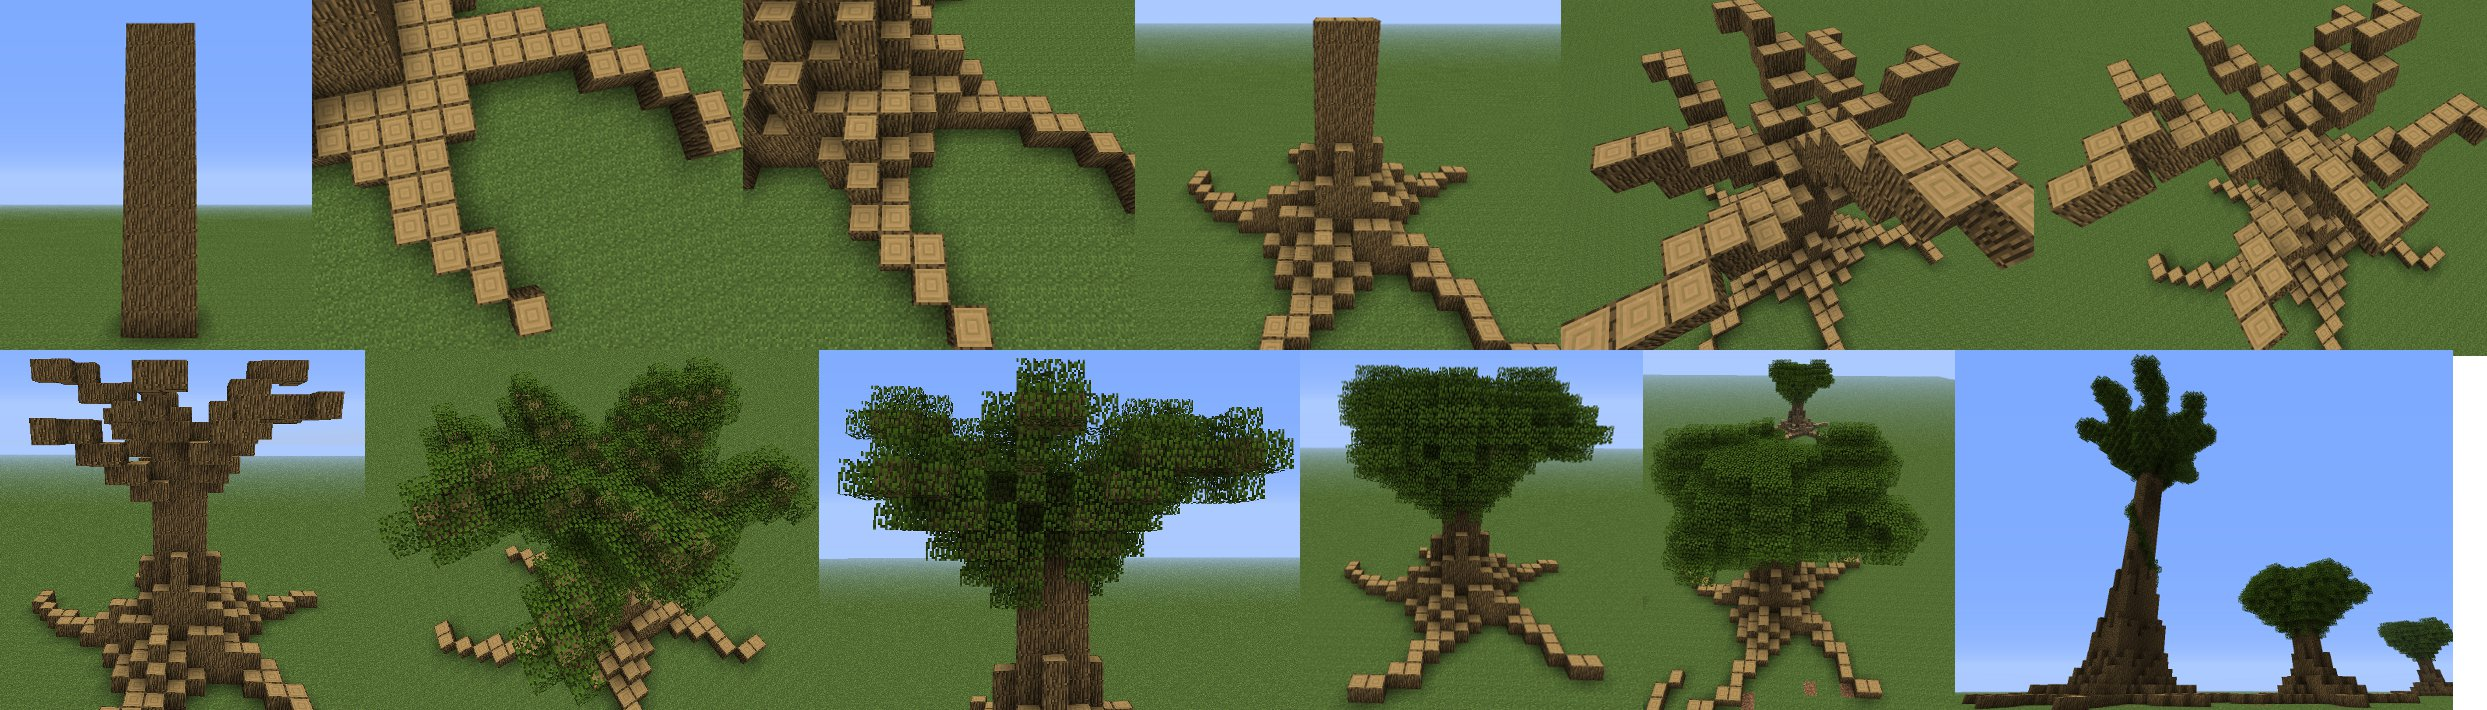 minecraft large tree instructions image - Minecraft Japanese Tree